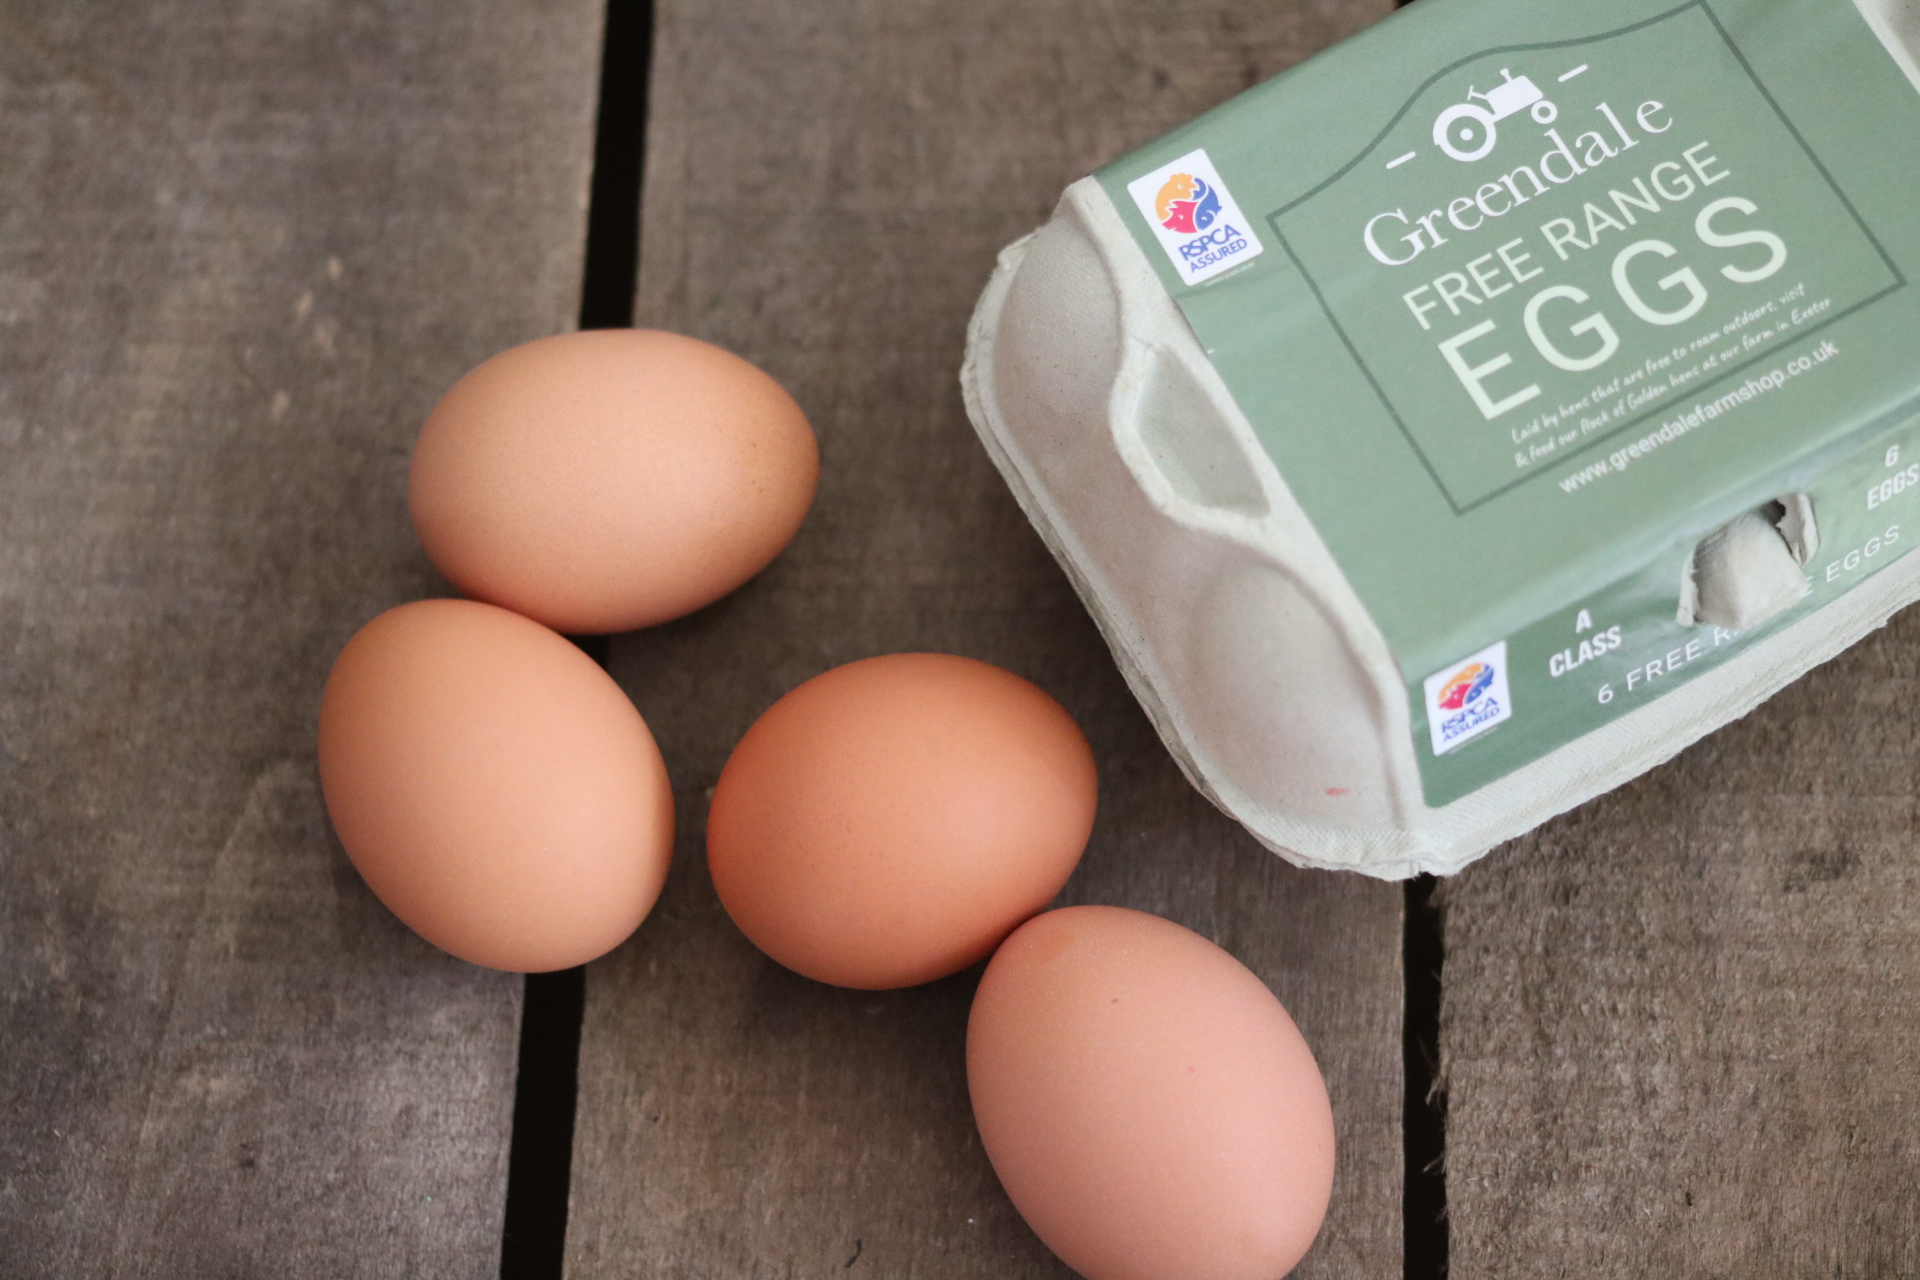 Greendale Free Range Eggs Very Large